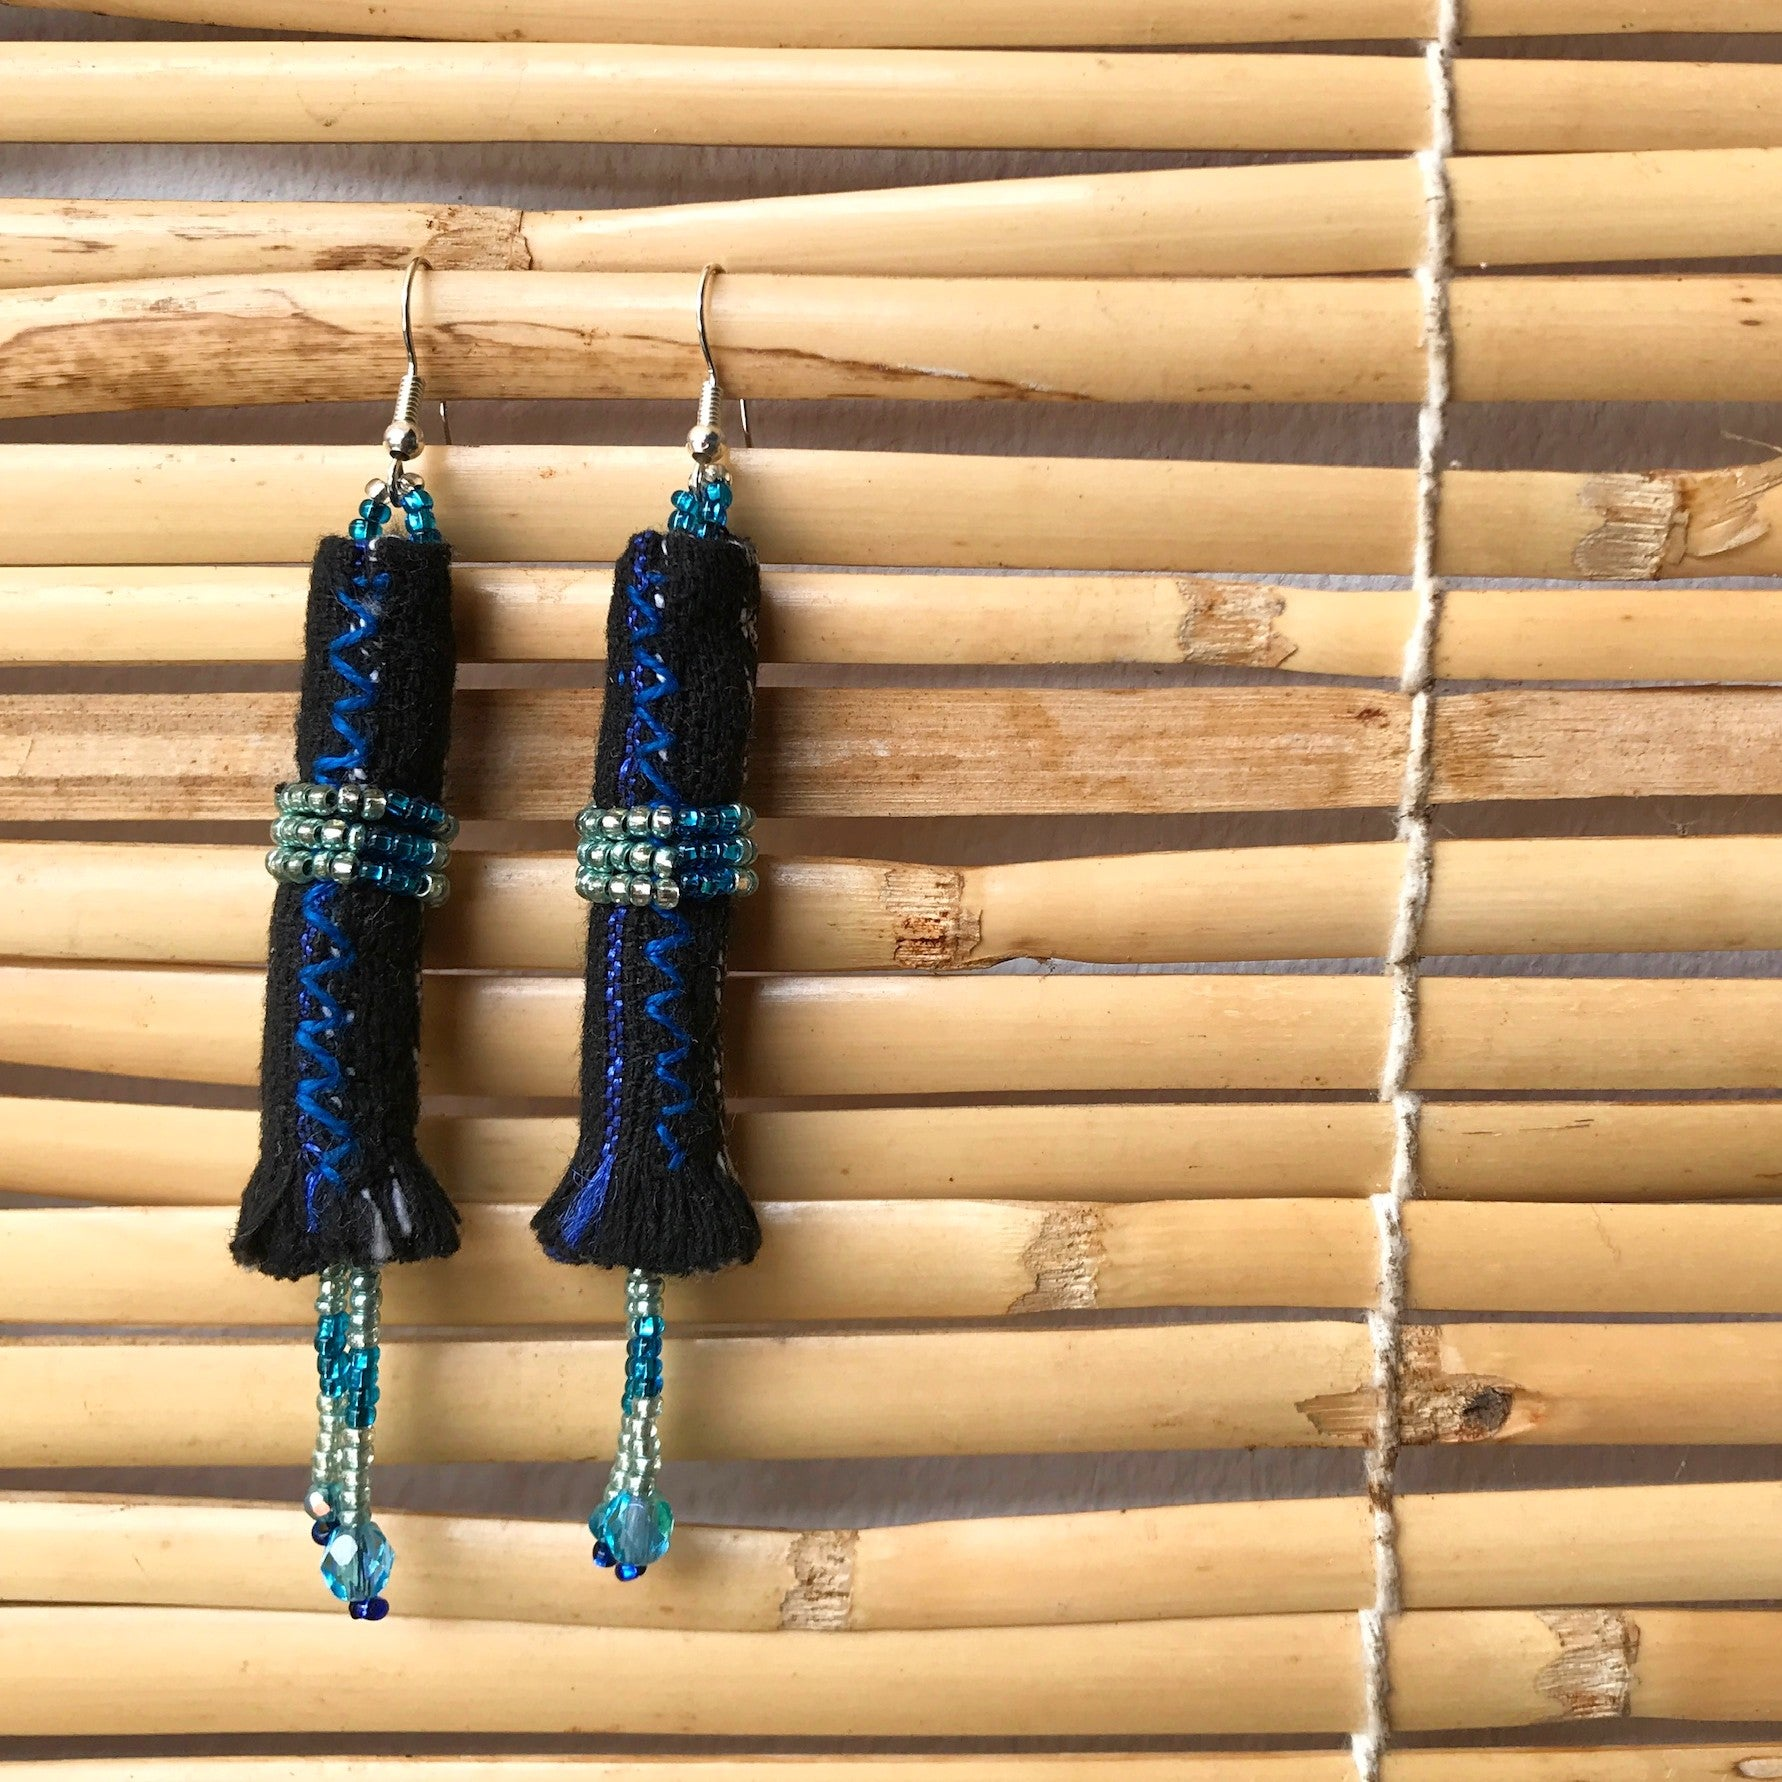 Long earrings 1: black